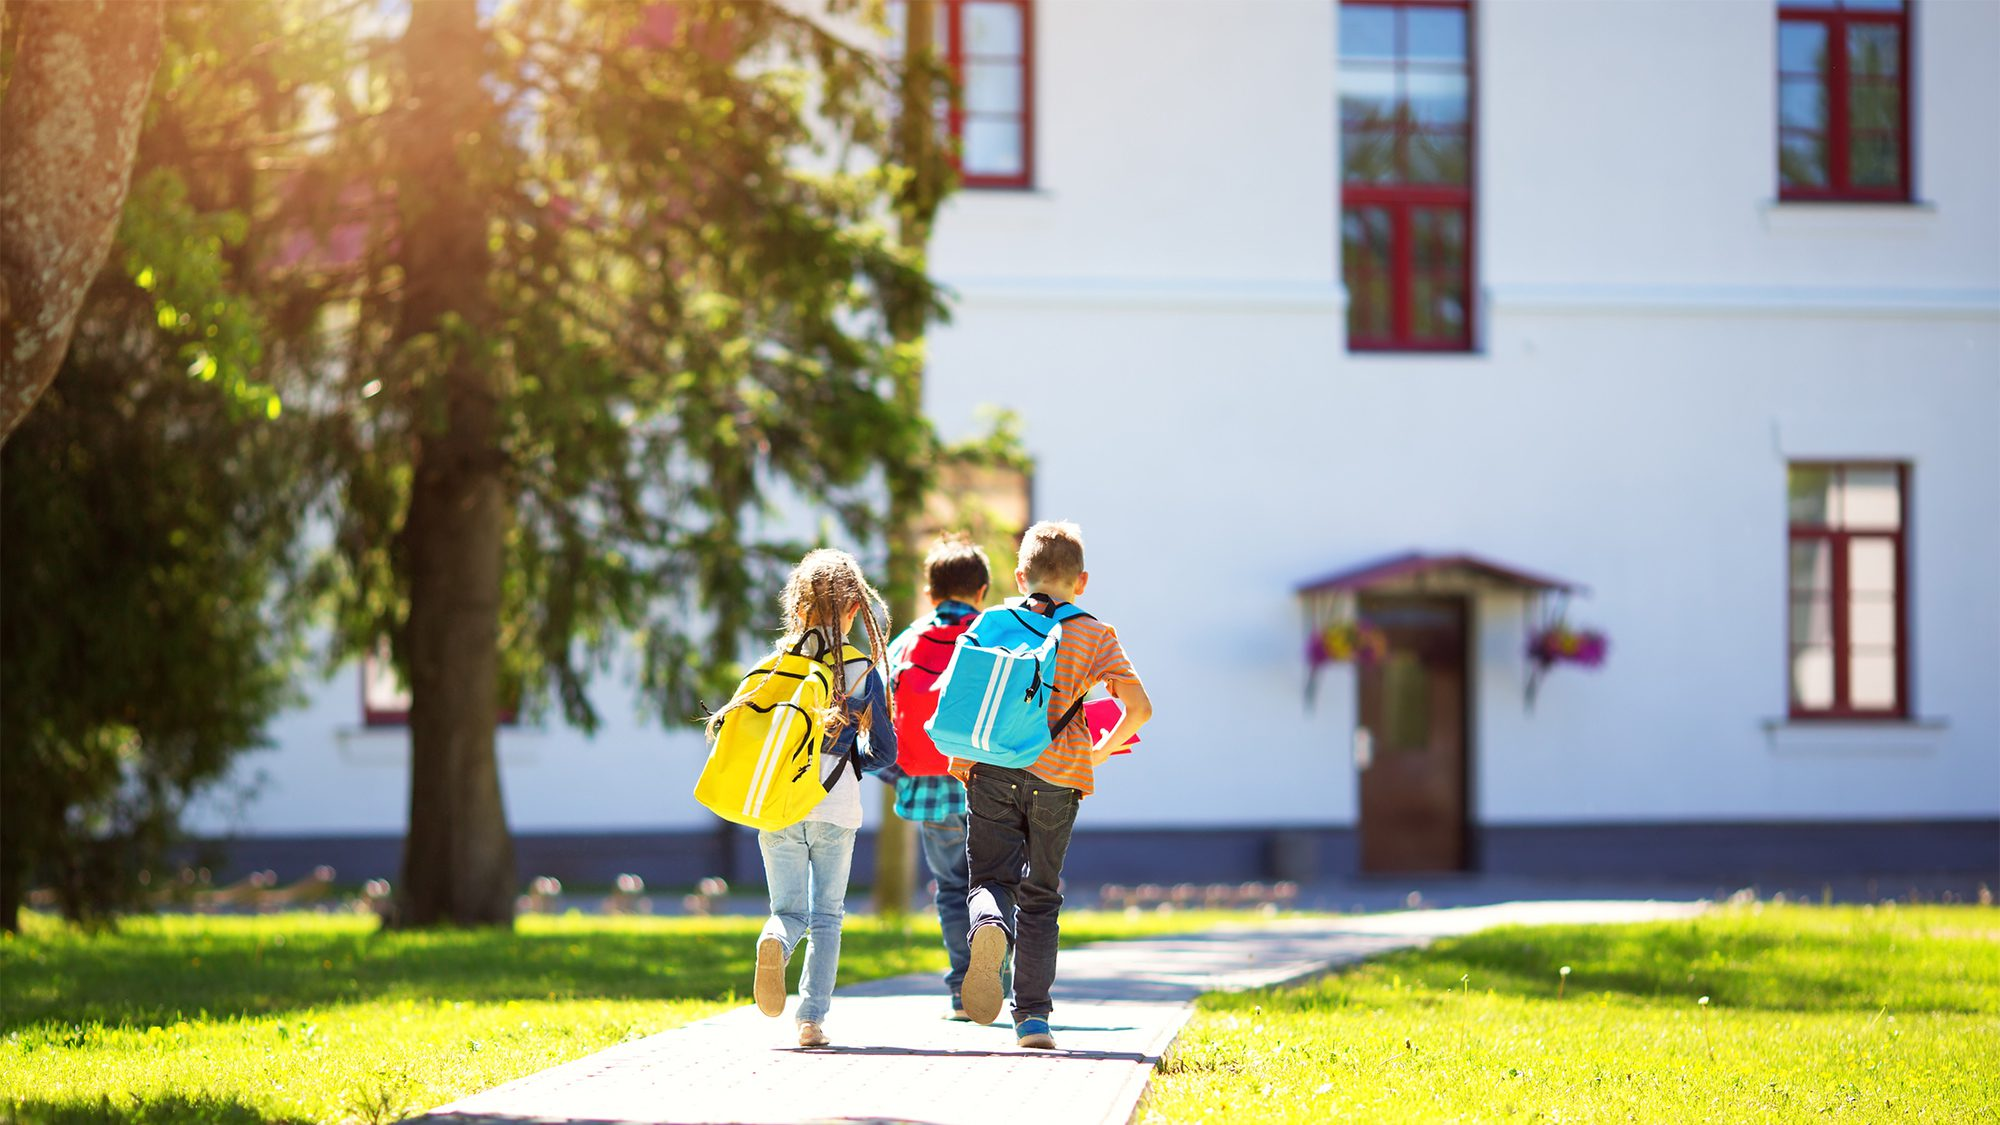 What to Consider When Buying a Home Near a School